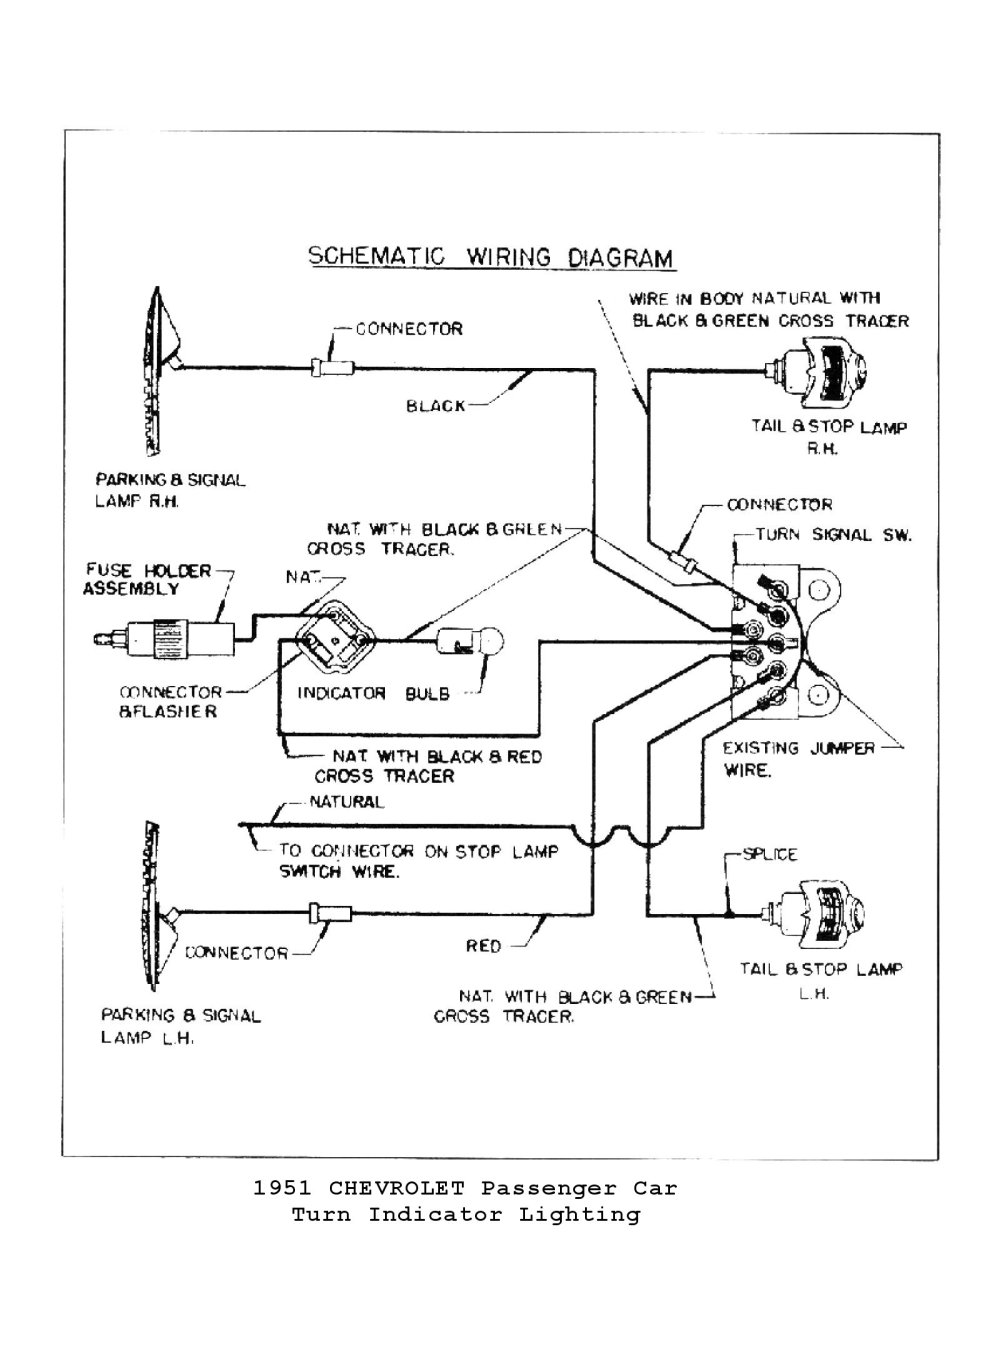 medium resolution of 55 chevy tail light wiring harness wiring diagram list 1953 chevy tail light wiring